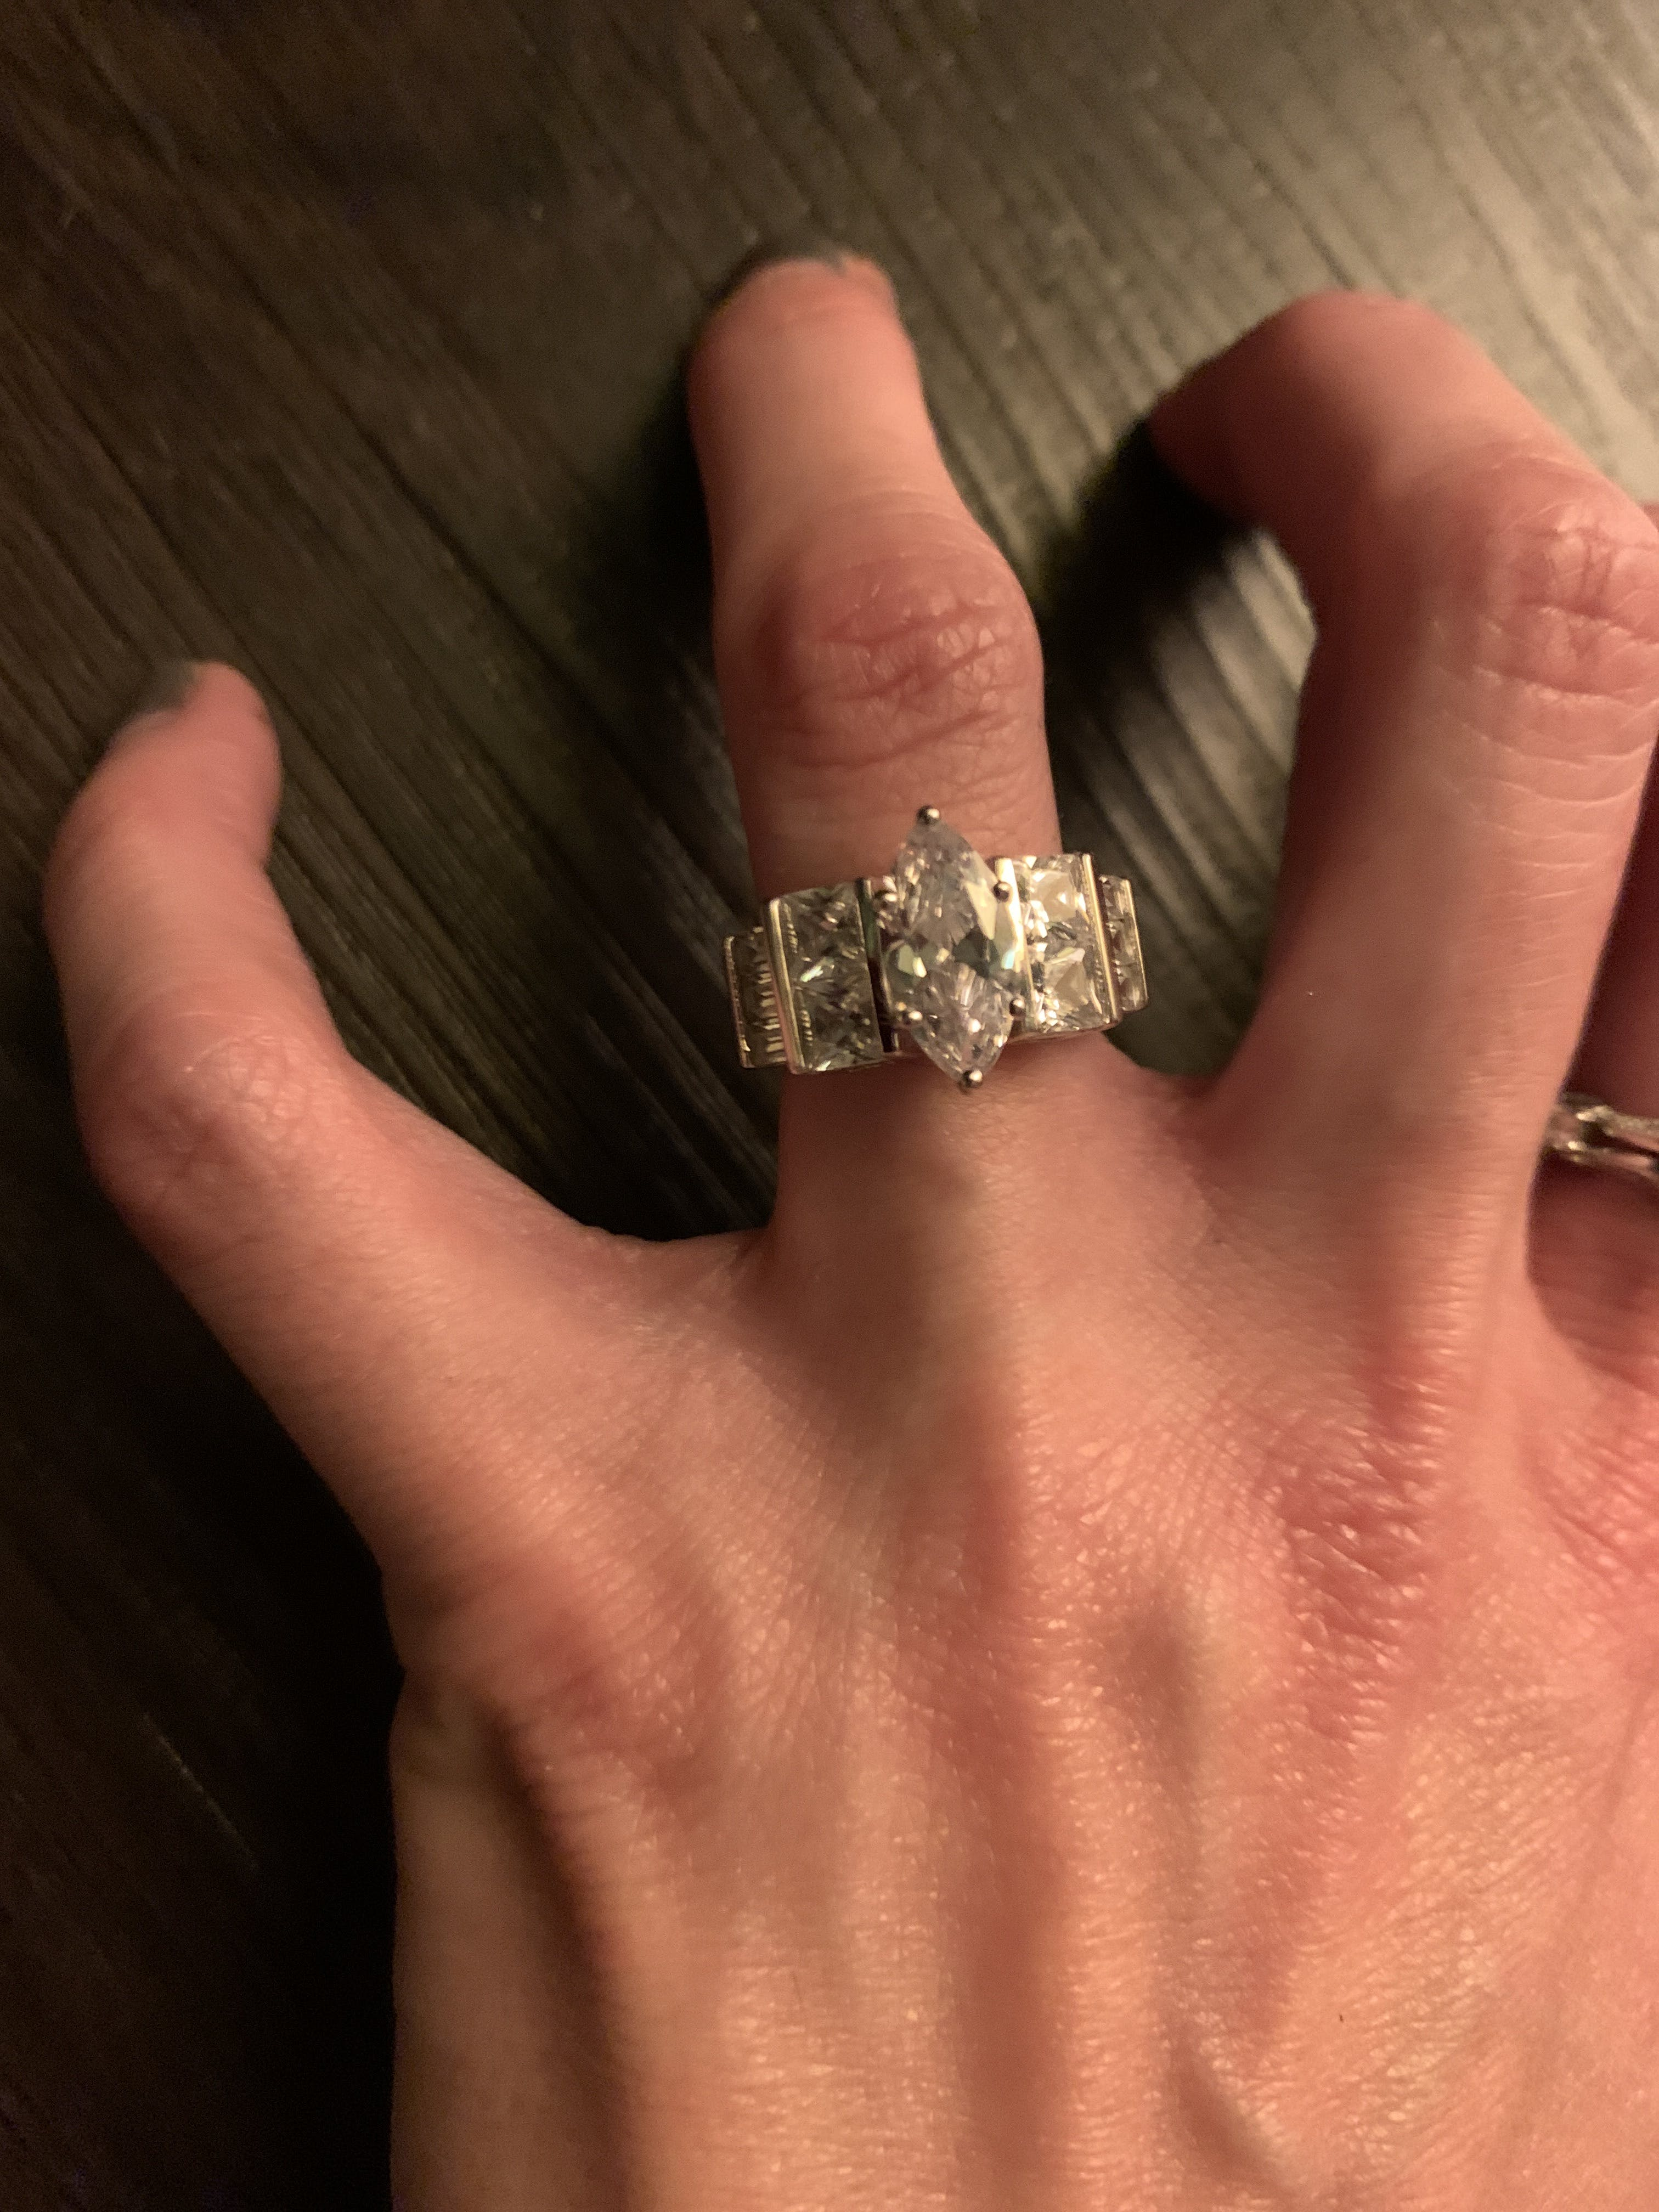 Dreamland Jewelry Rings : dreamland, jewelry, rings, Sterling, Silver, Marquise, Engagement, Clear